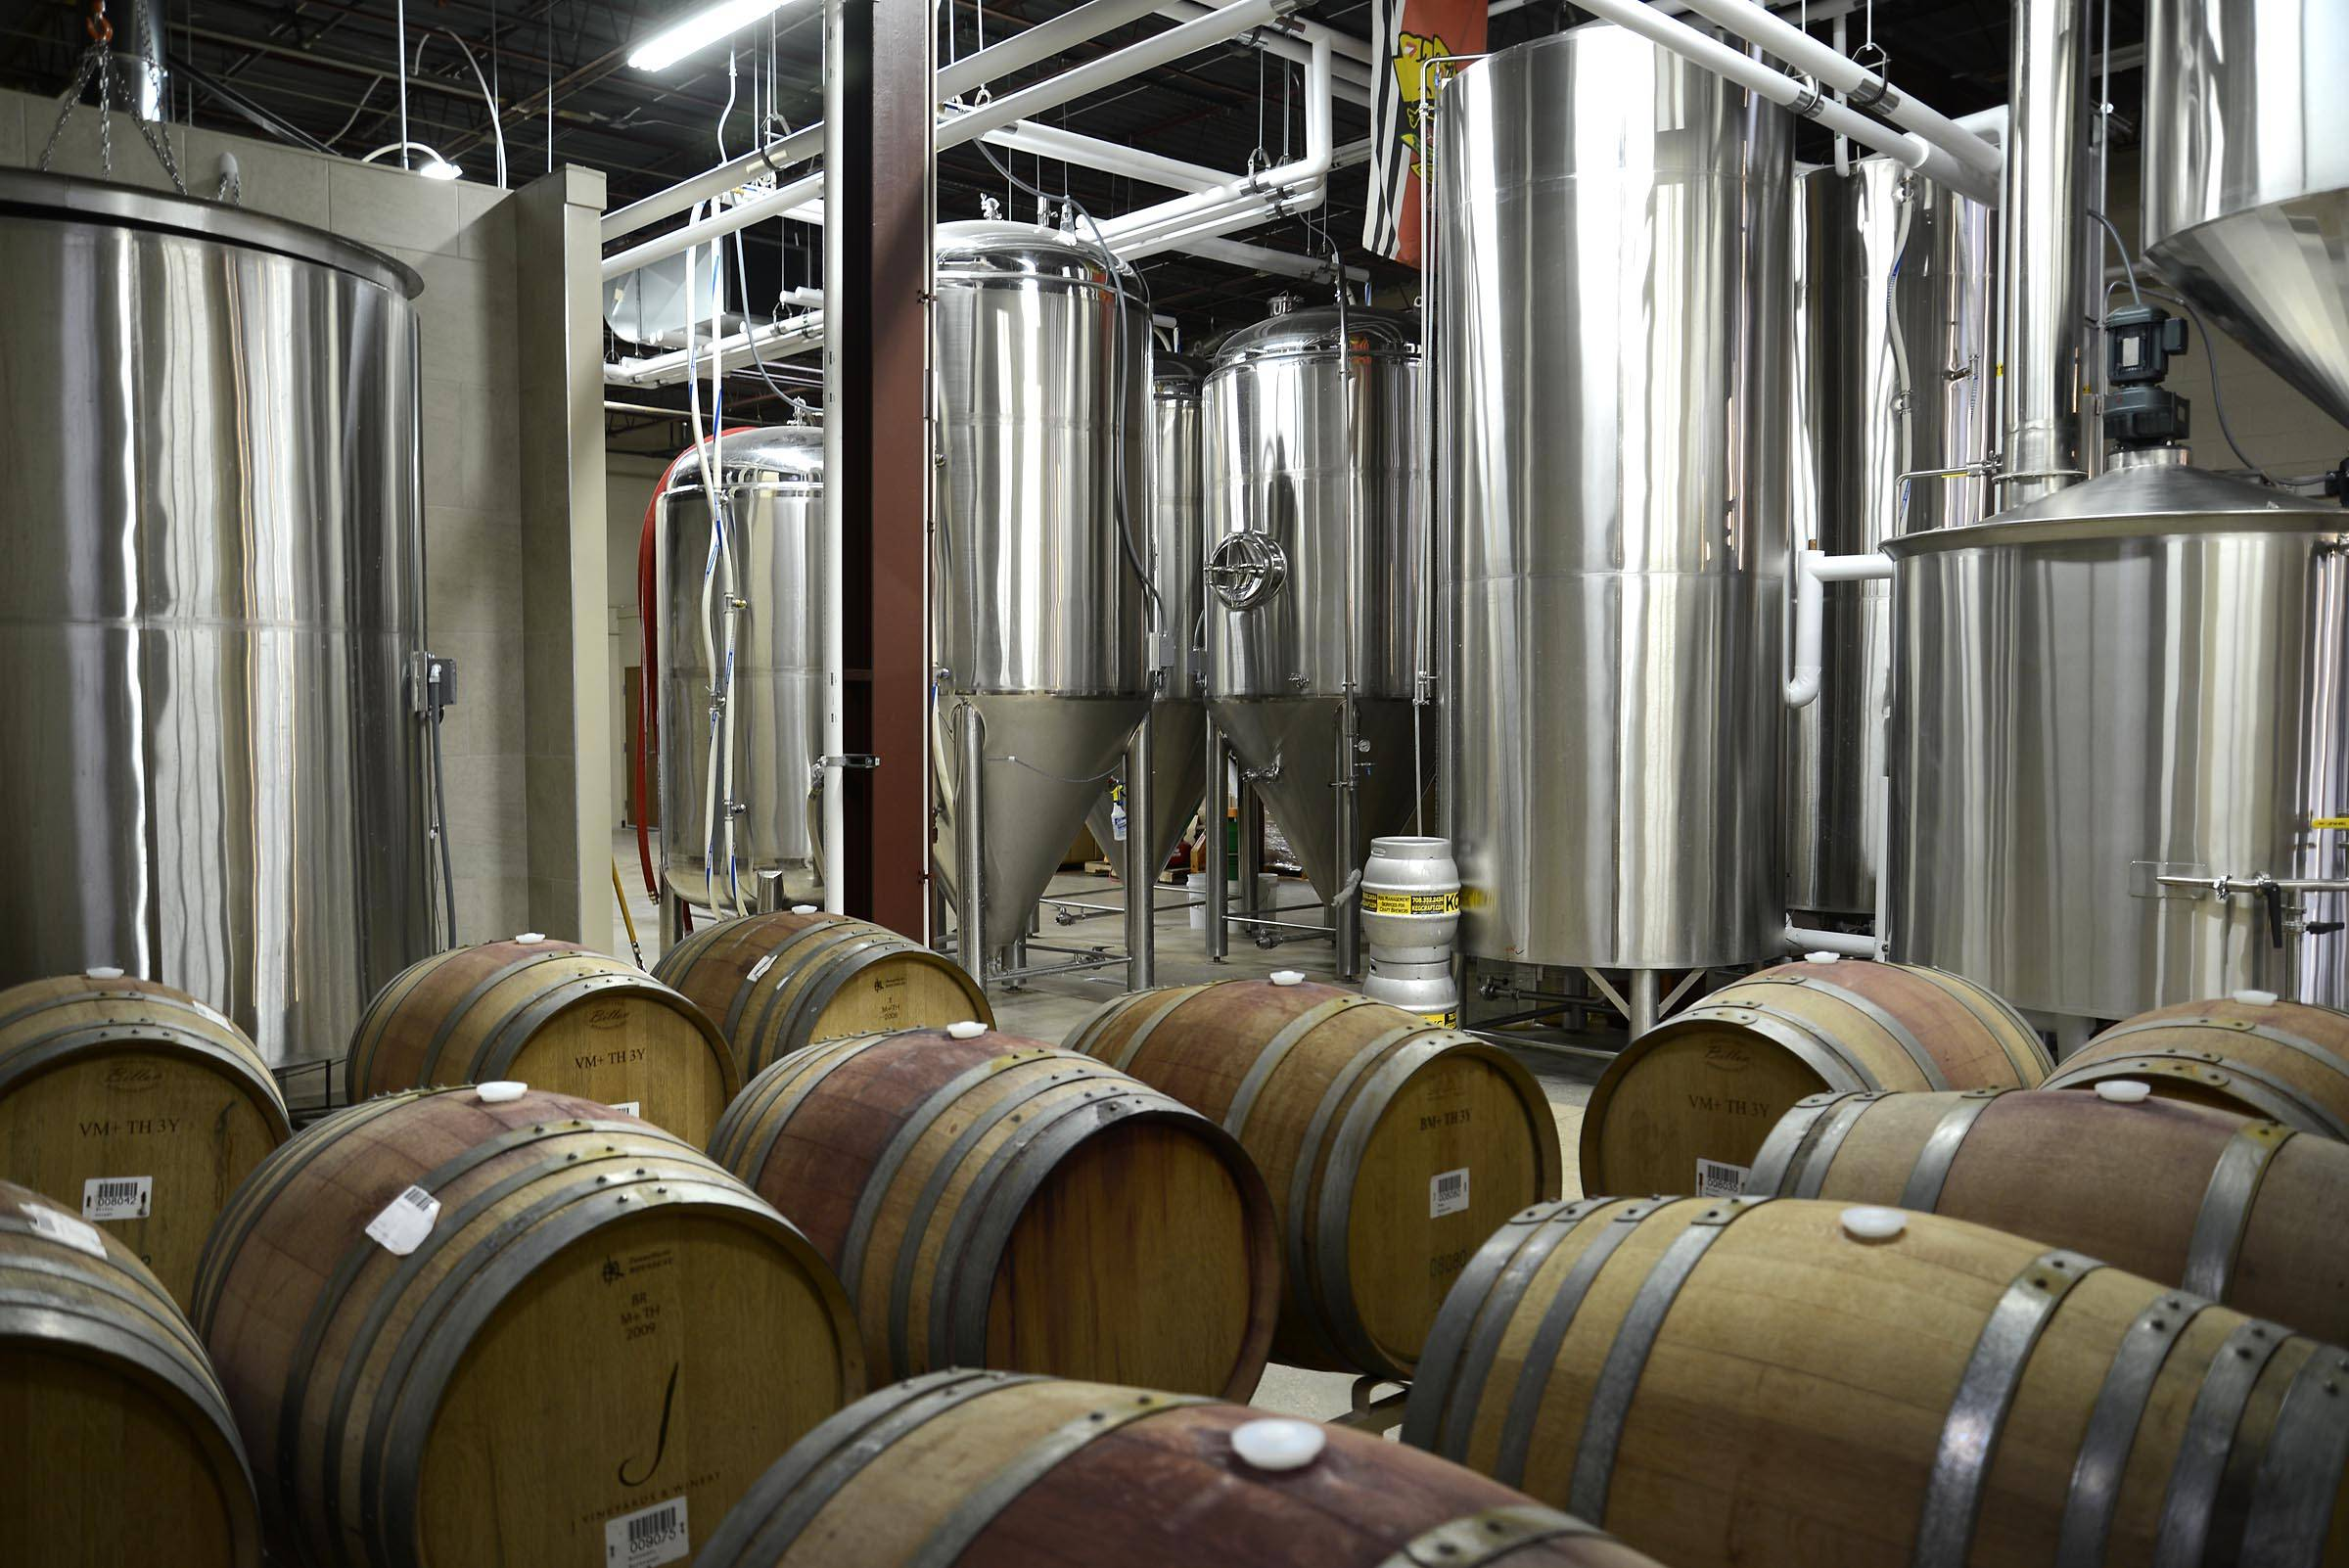 John Starks/jstarks@dailyherald.com, file photo The brewing room at Scorched Earth Brewing Co. in Algonquin is expanding.